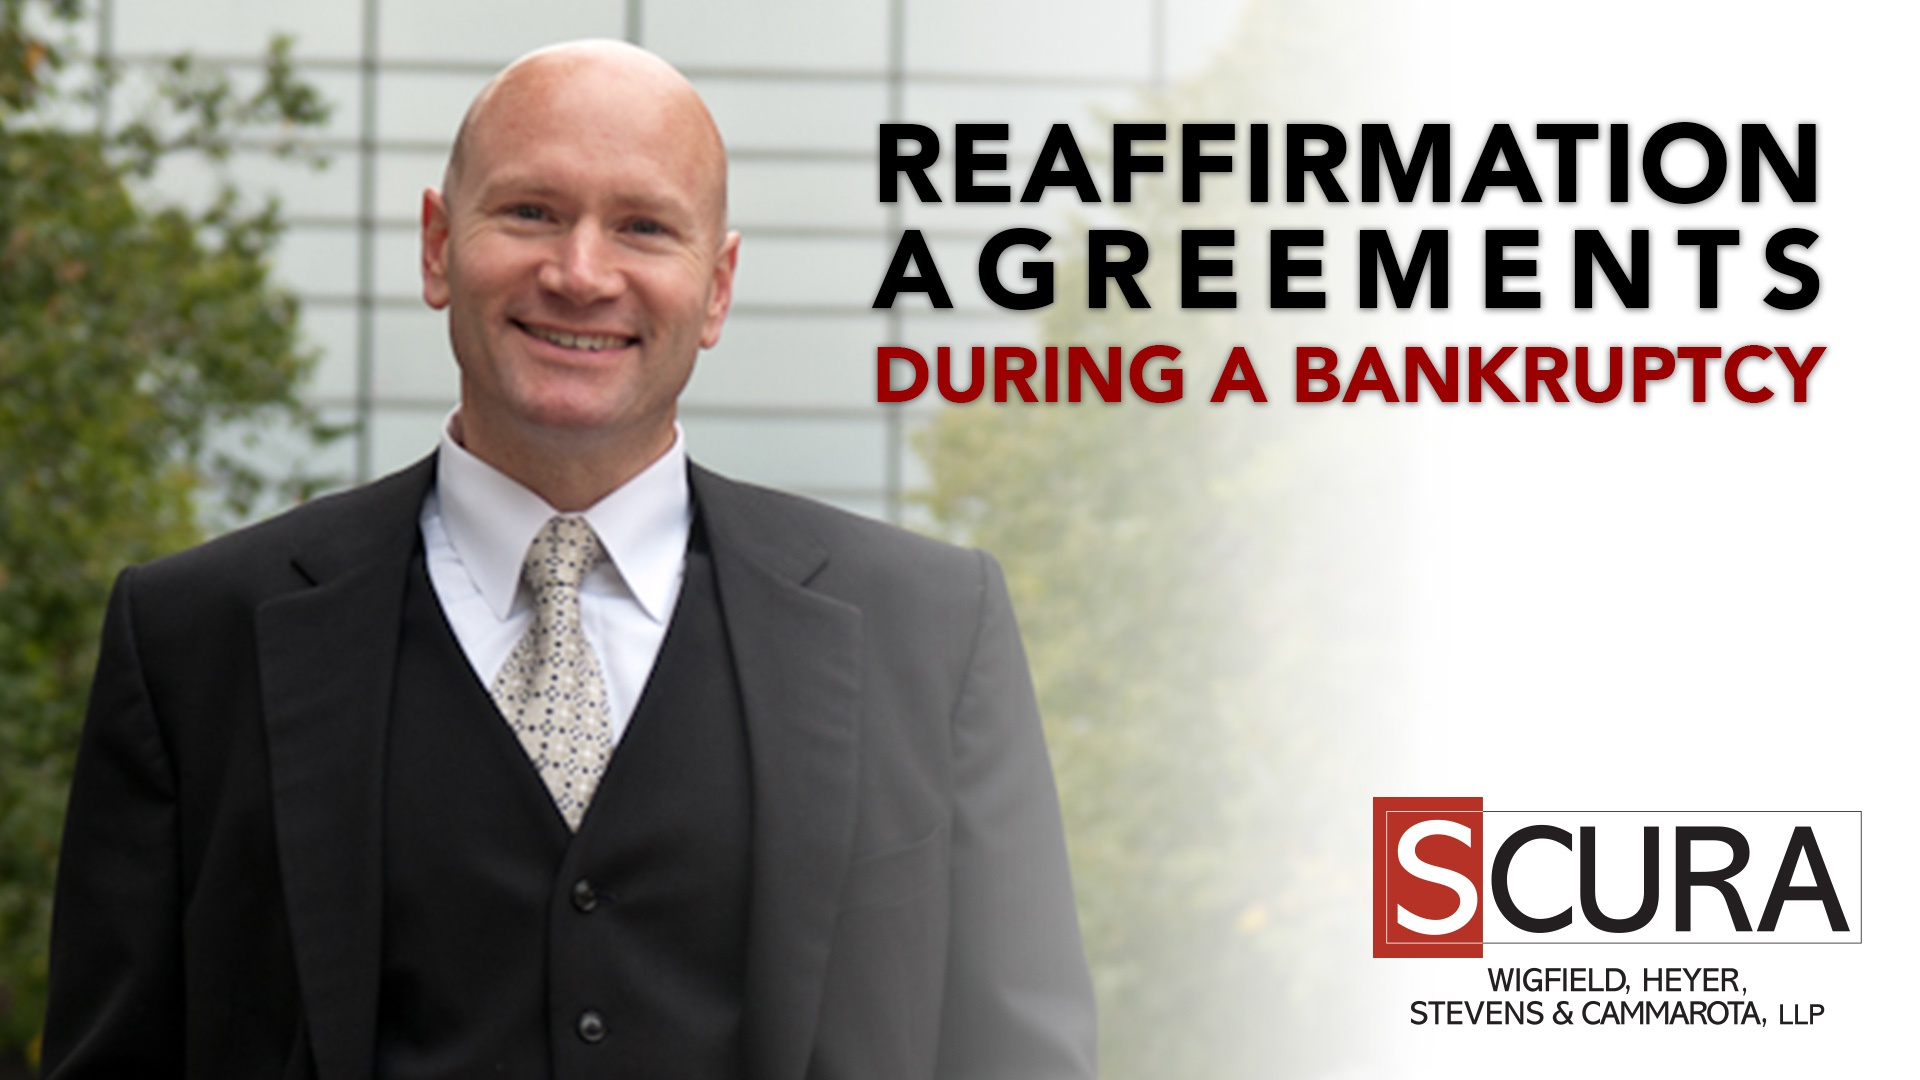 reaffirmation-agreements-bankruptcy-thumbnail